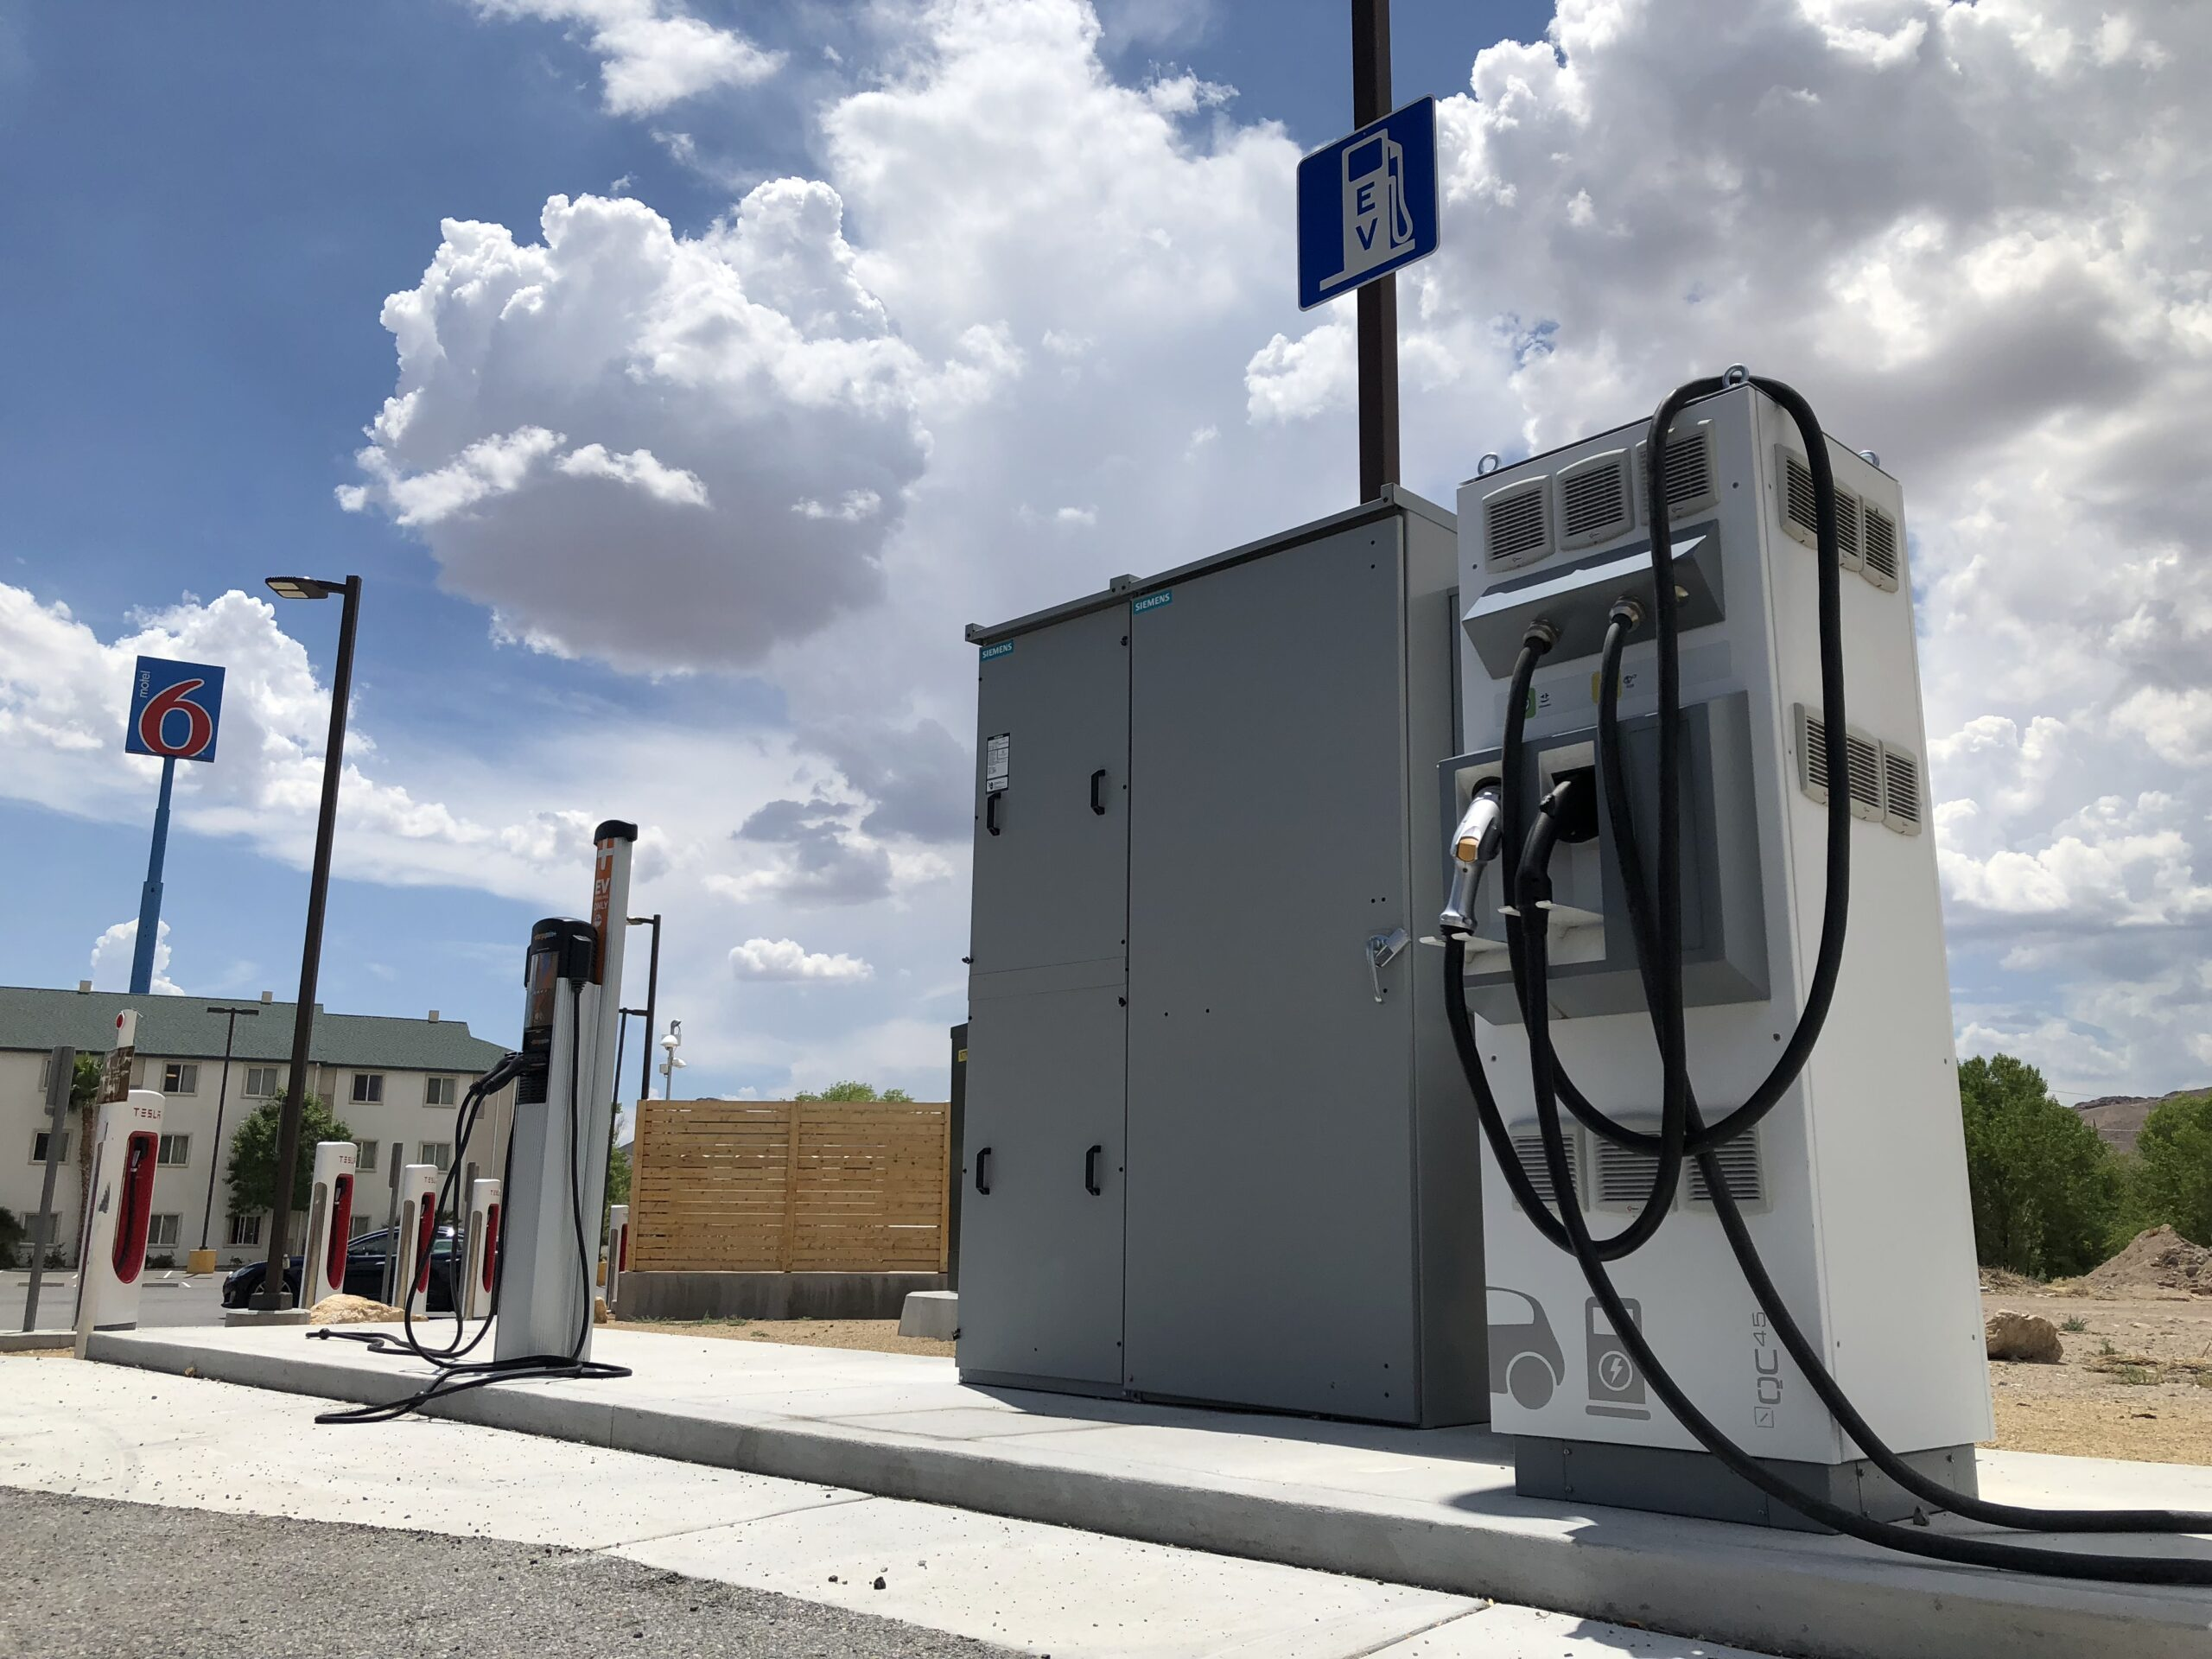 A photo of an electric charging station